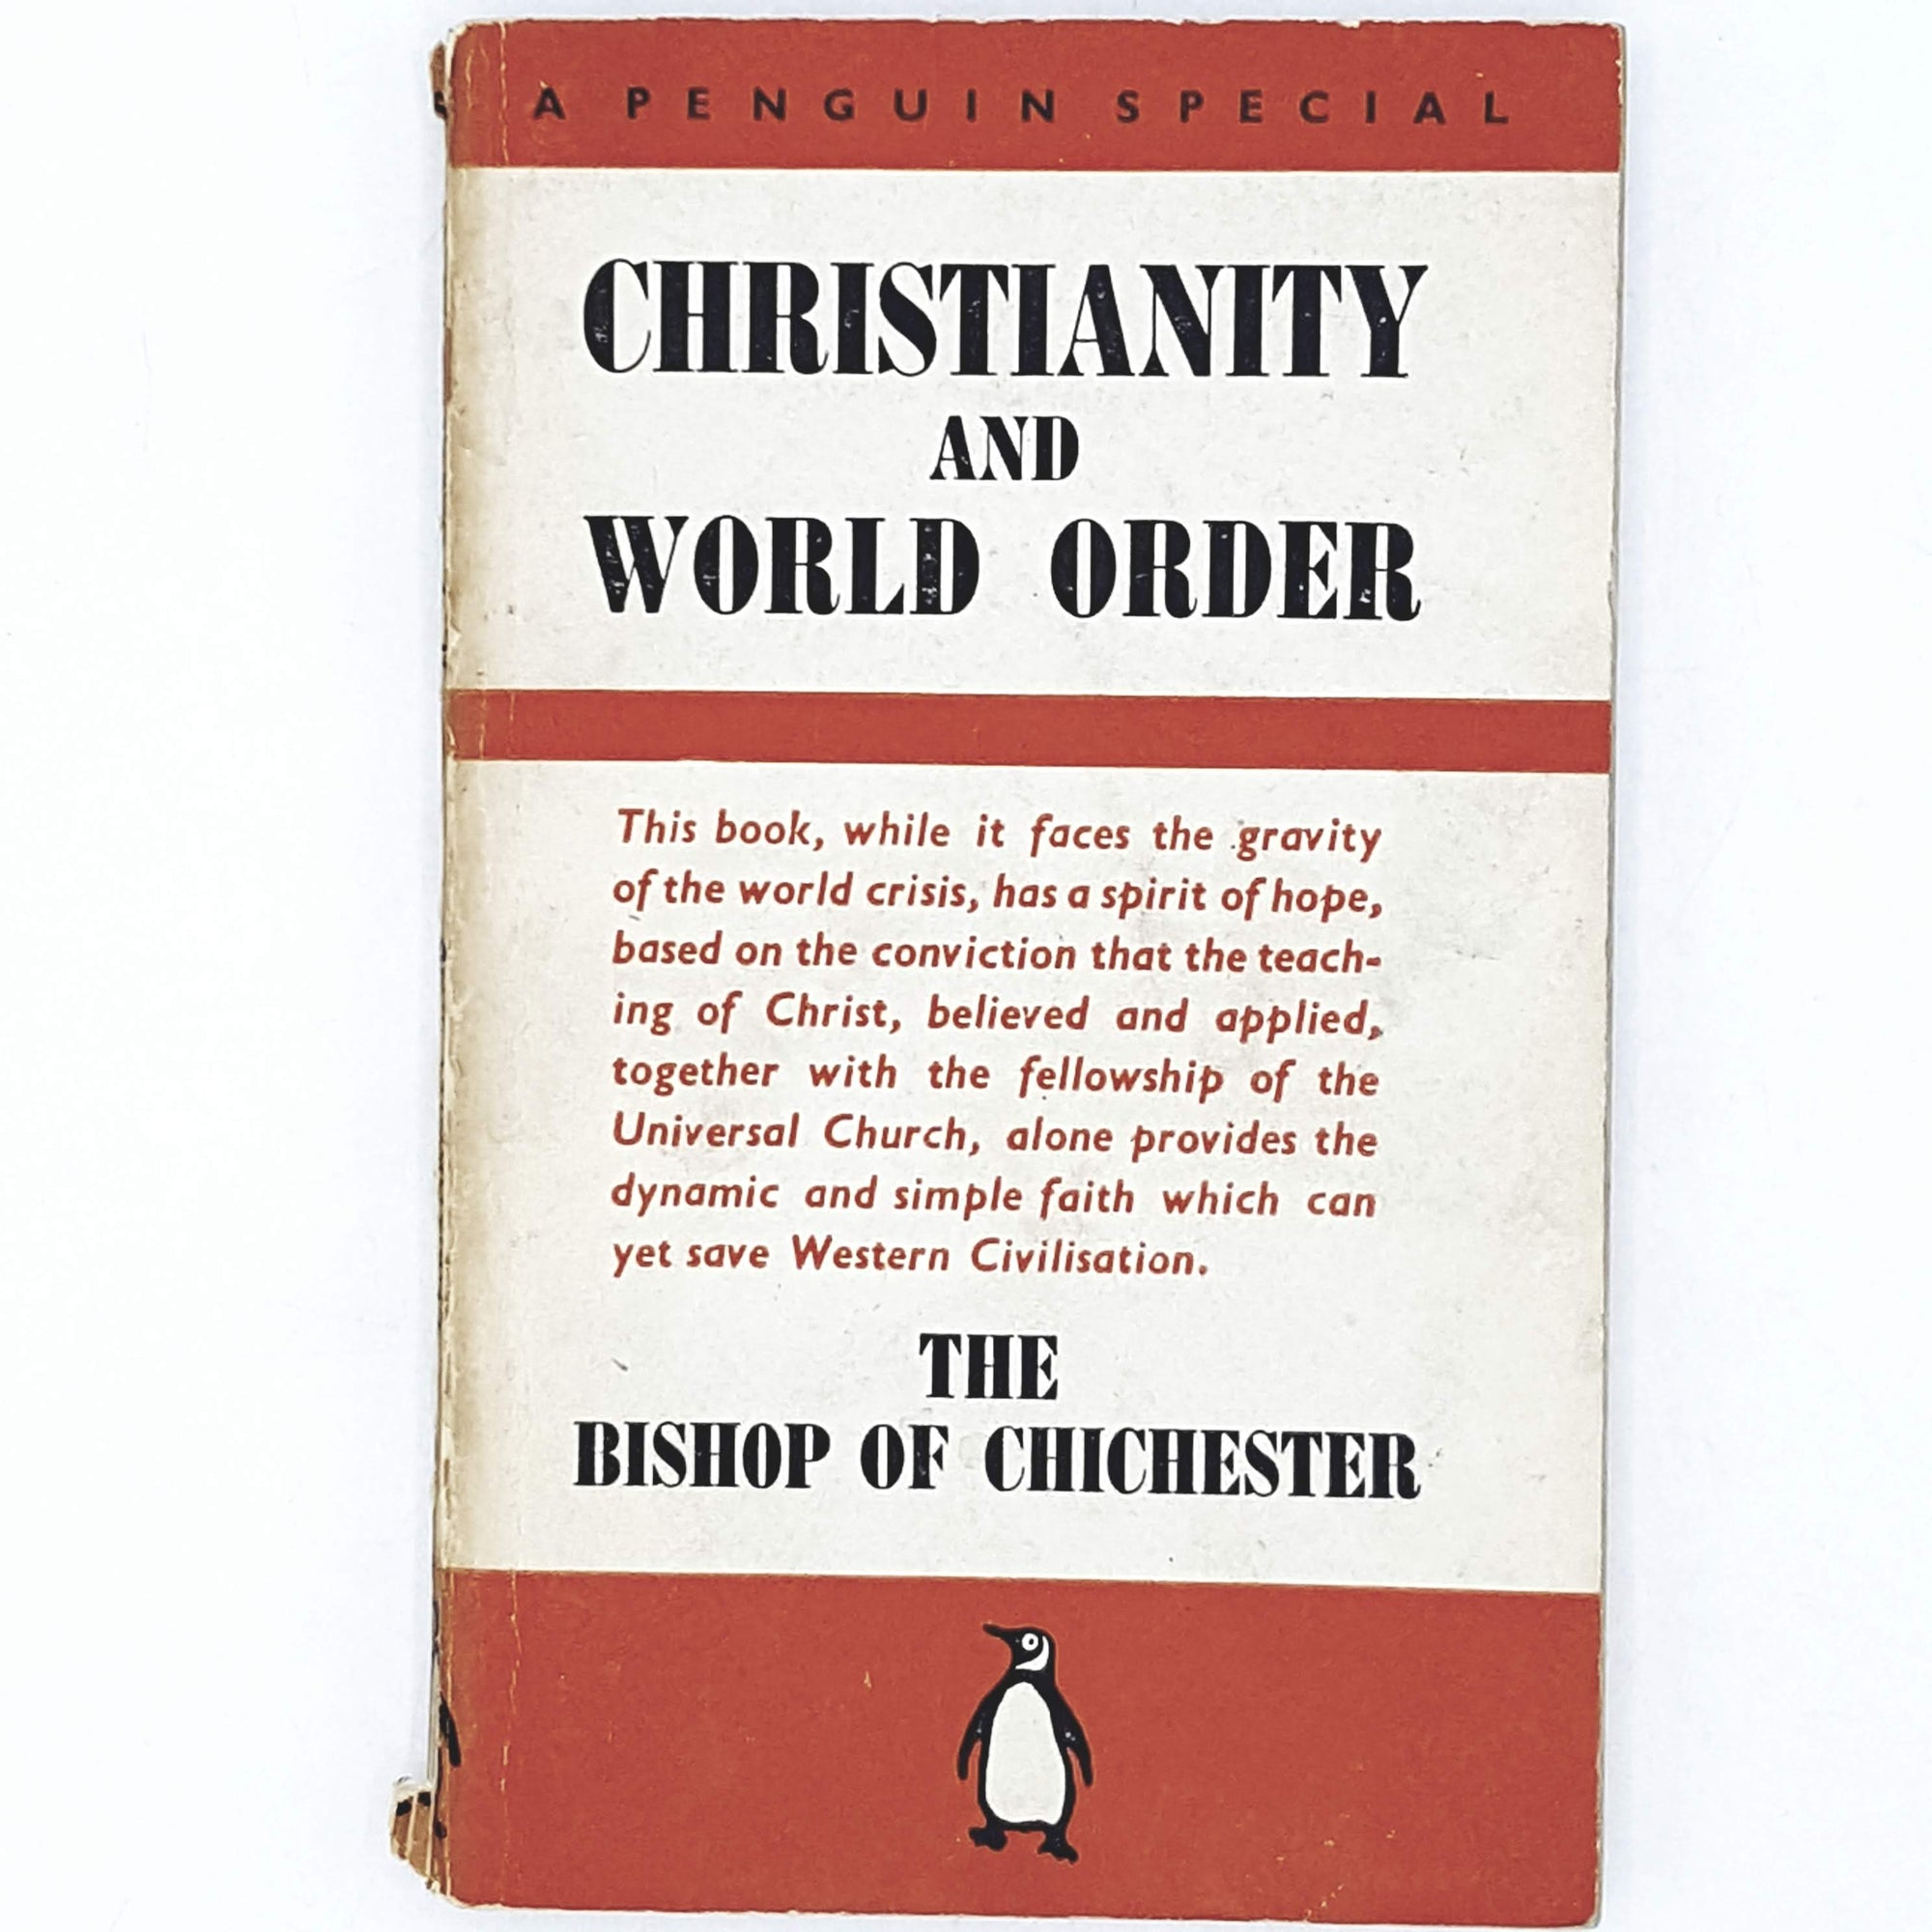 orange-christianity-world-order-special-vintage-penguin-country-house-library